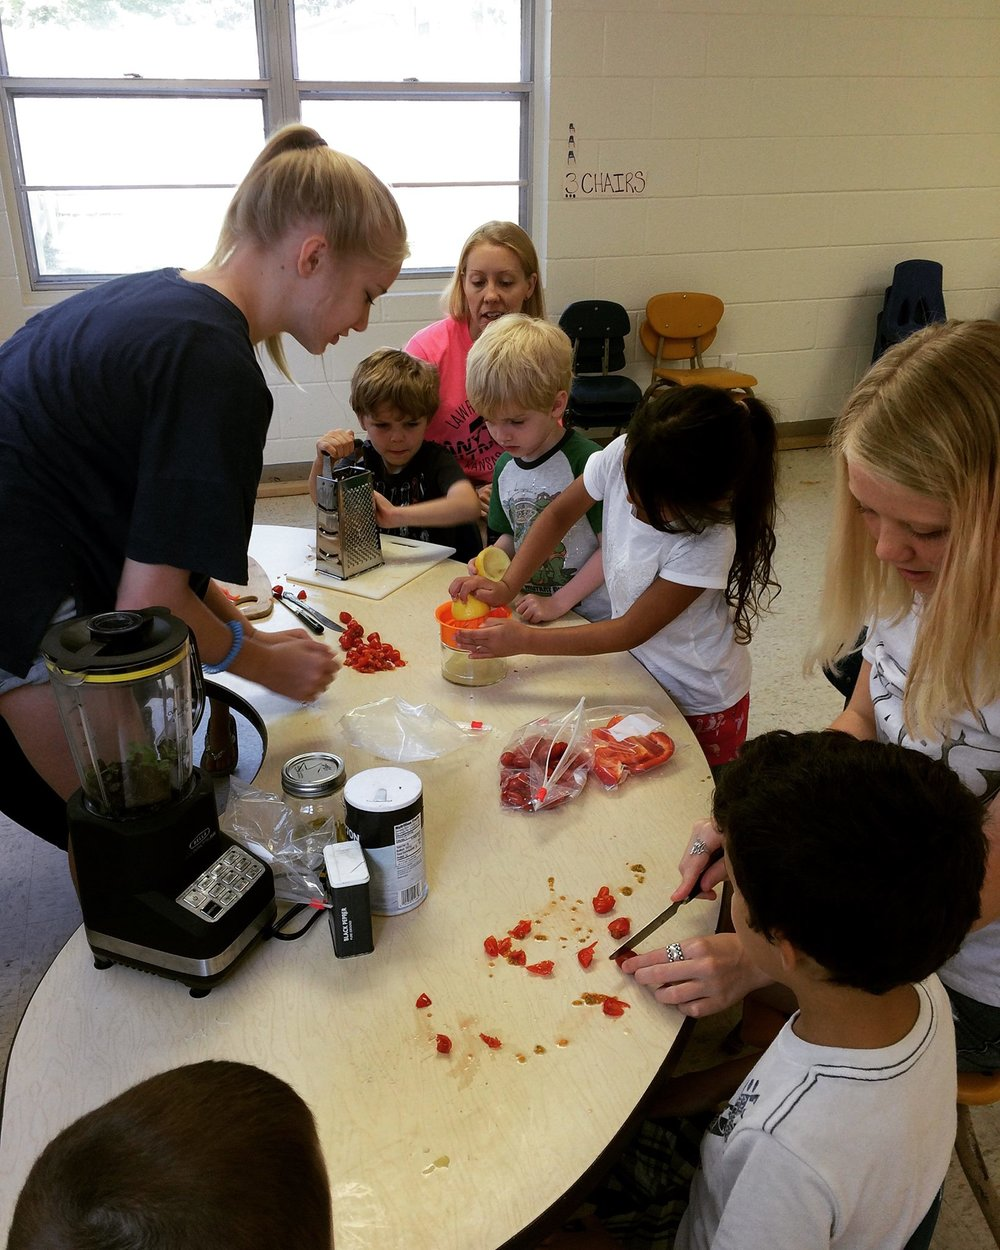 Youth help preschool children at Children's Learning Center cut veggies and make basil pesto.